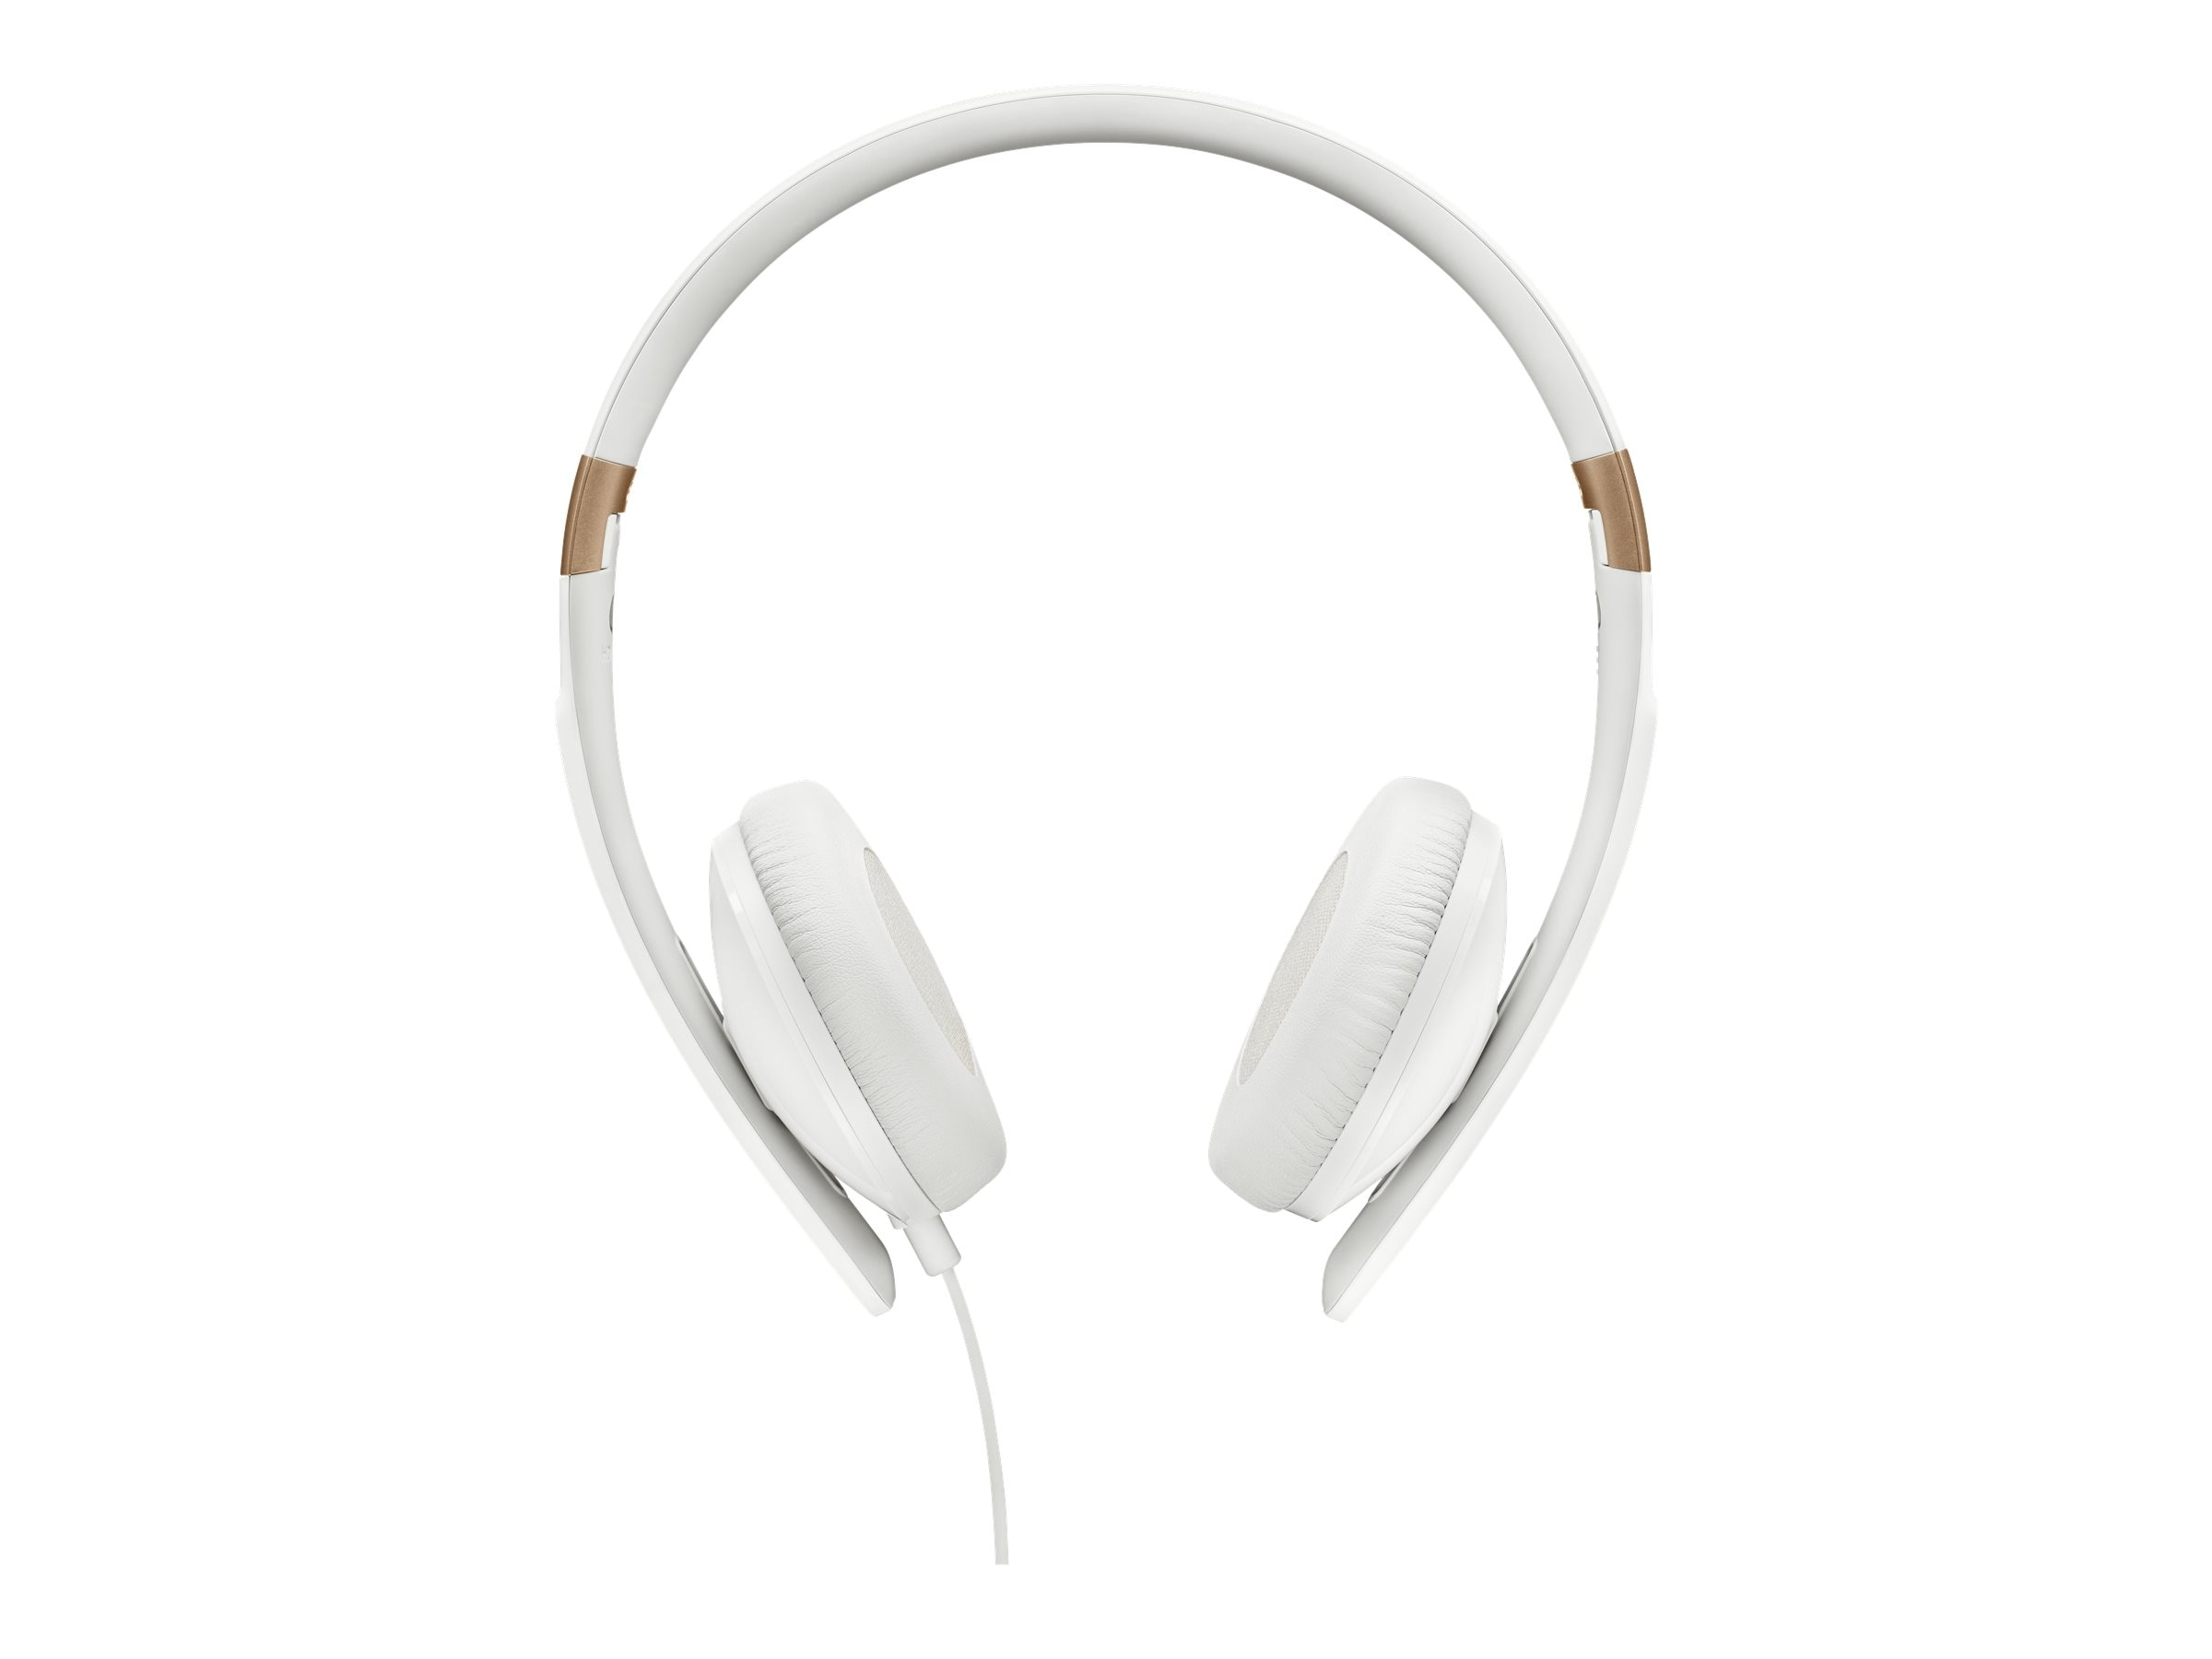 Sennheiser Slim Lightweight Foldable Headphones with 3-Button Remote Mic, White, HD 2.30 G WHITE